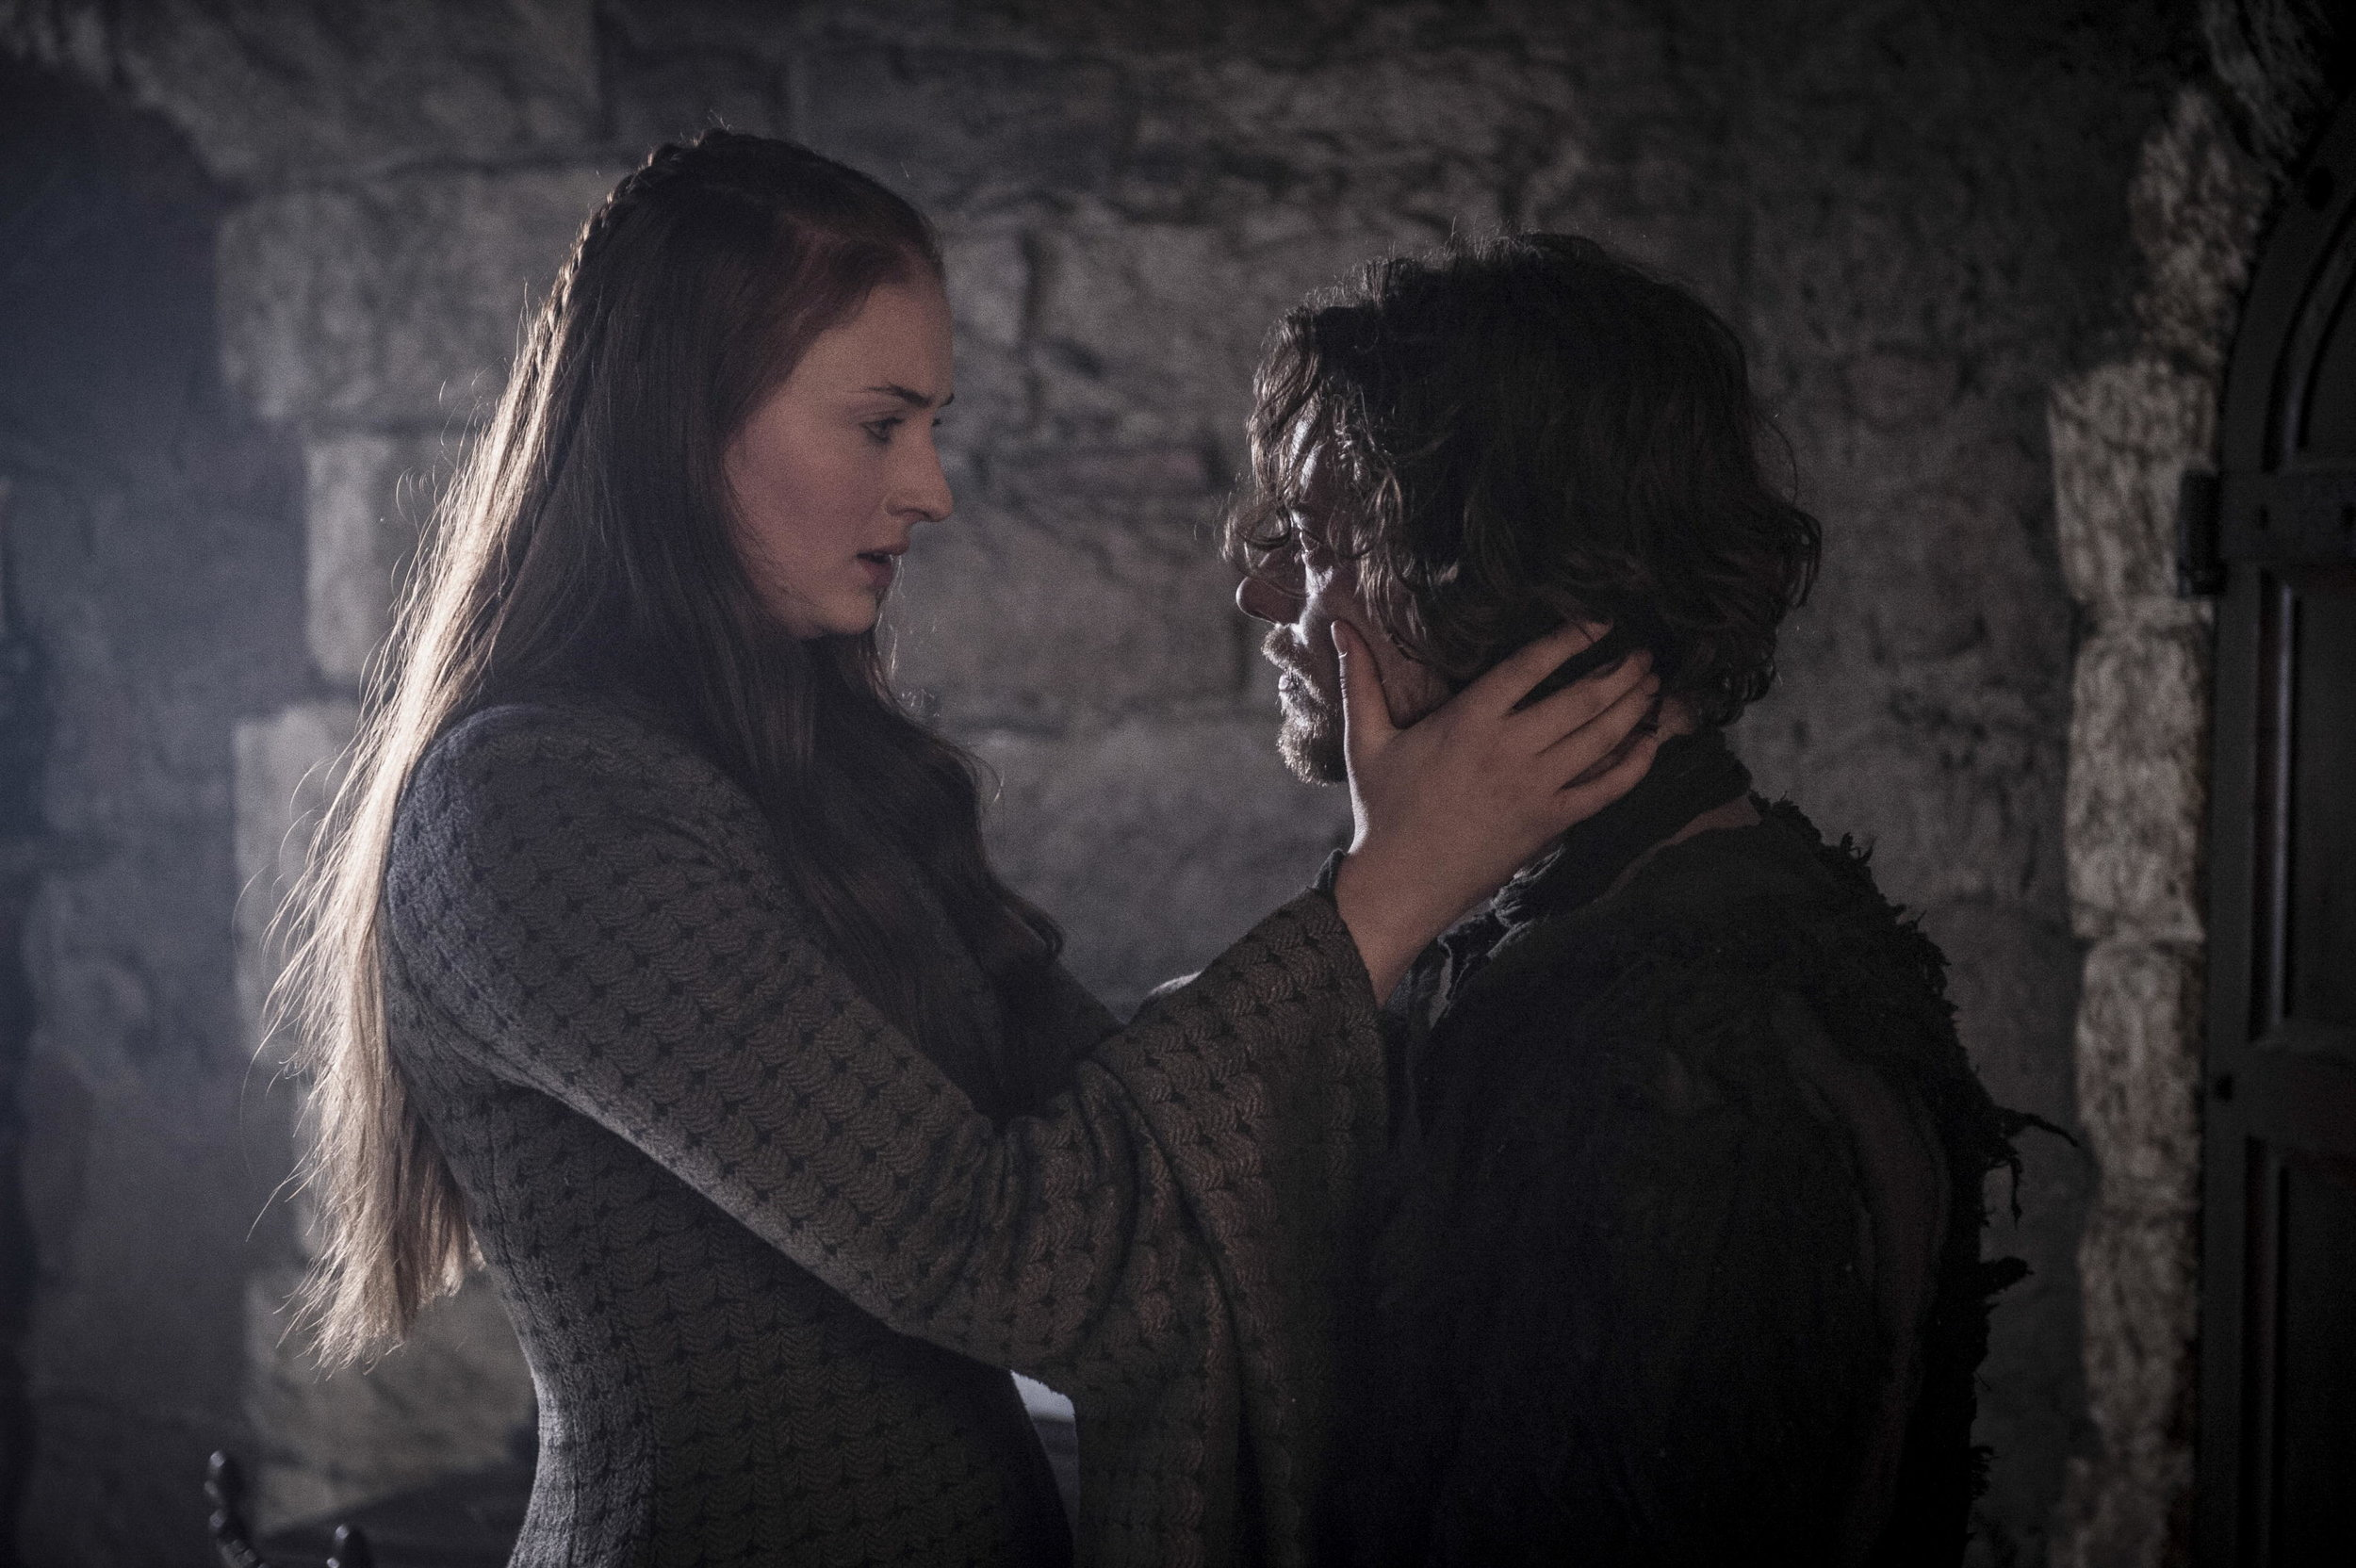 Sansa-and-Theon-or-Reek-or-whatever-in-Winterfell-Official-HBO